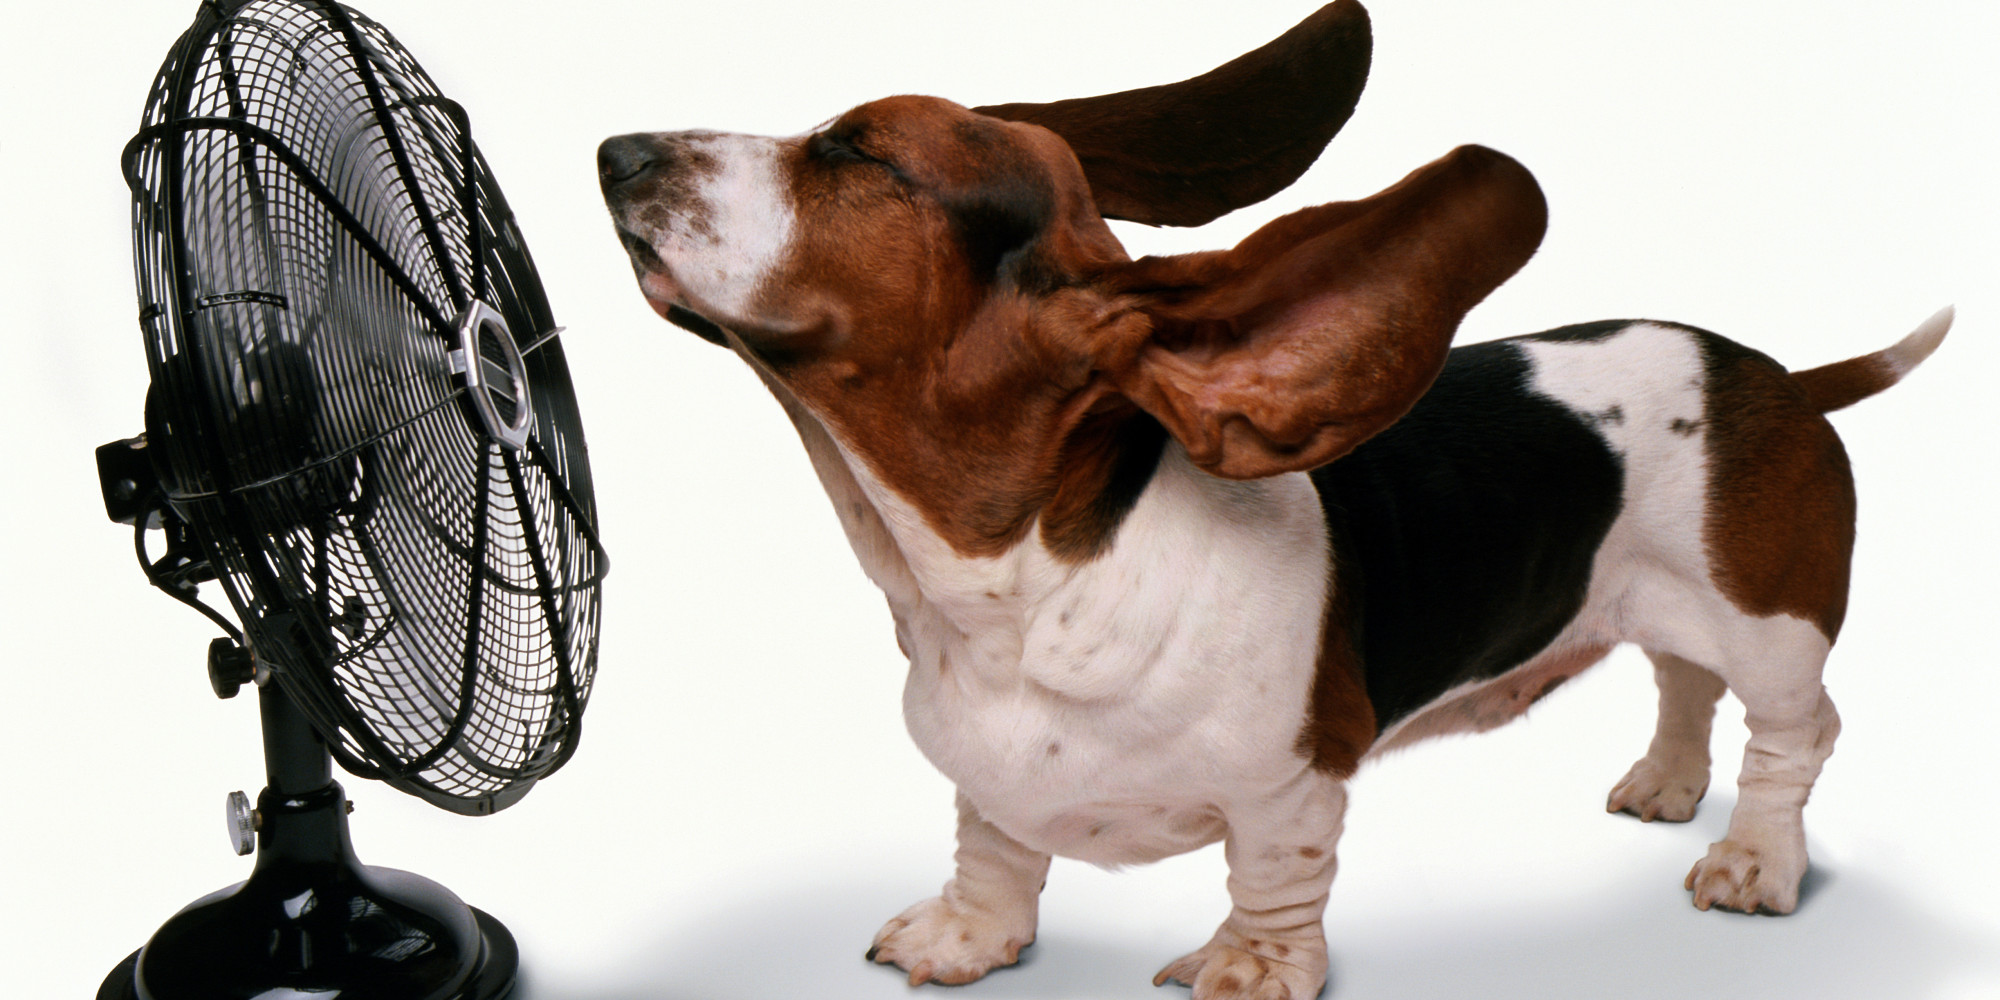 15 Brilliant Ways To Keep Your Home Cool Without Air Conditioning Huffpost